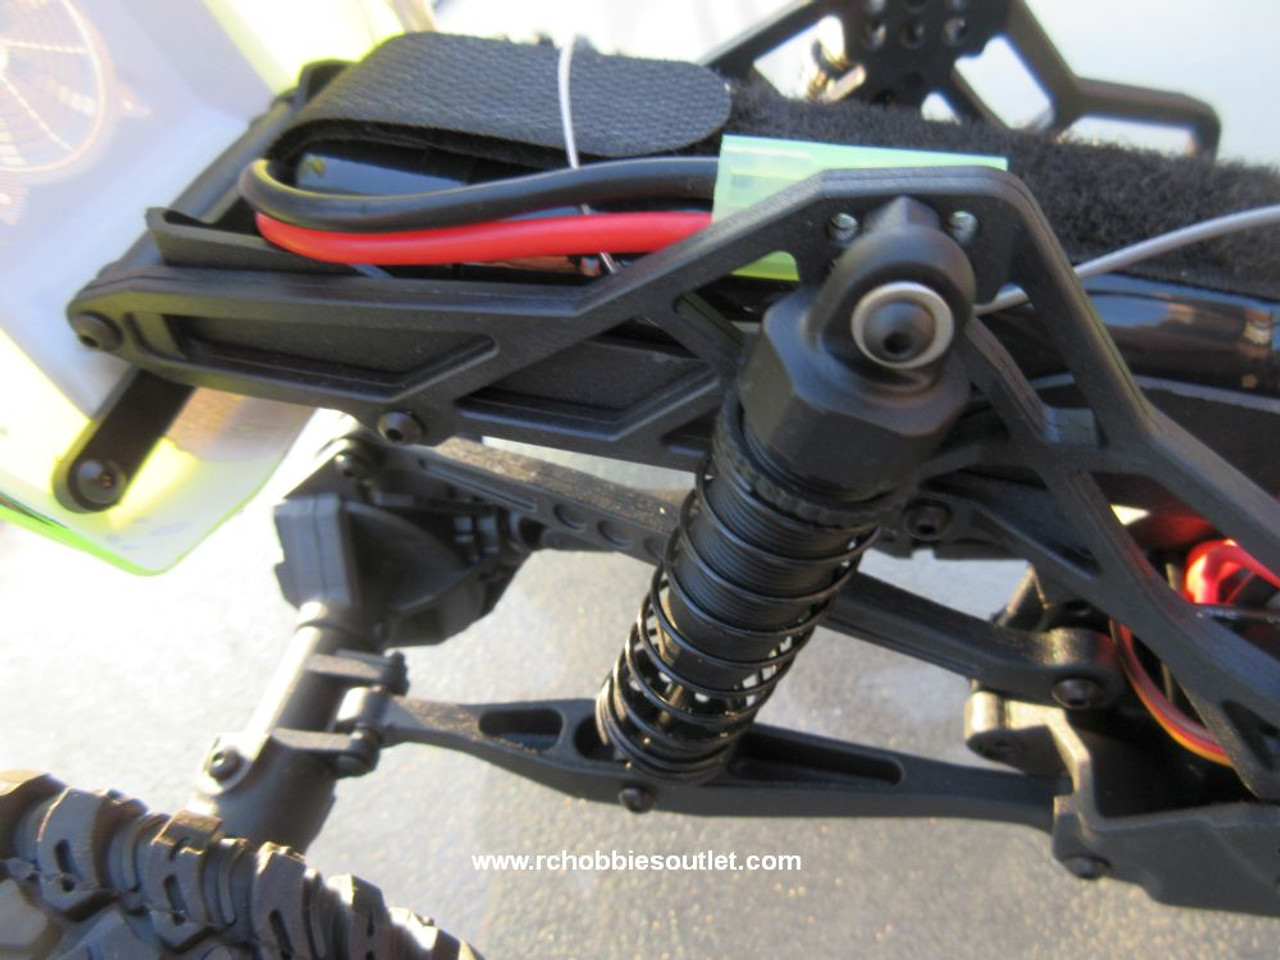 Battery Holder and Mid Rear Positioned Shock Absorber